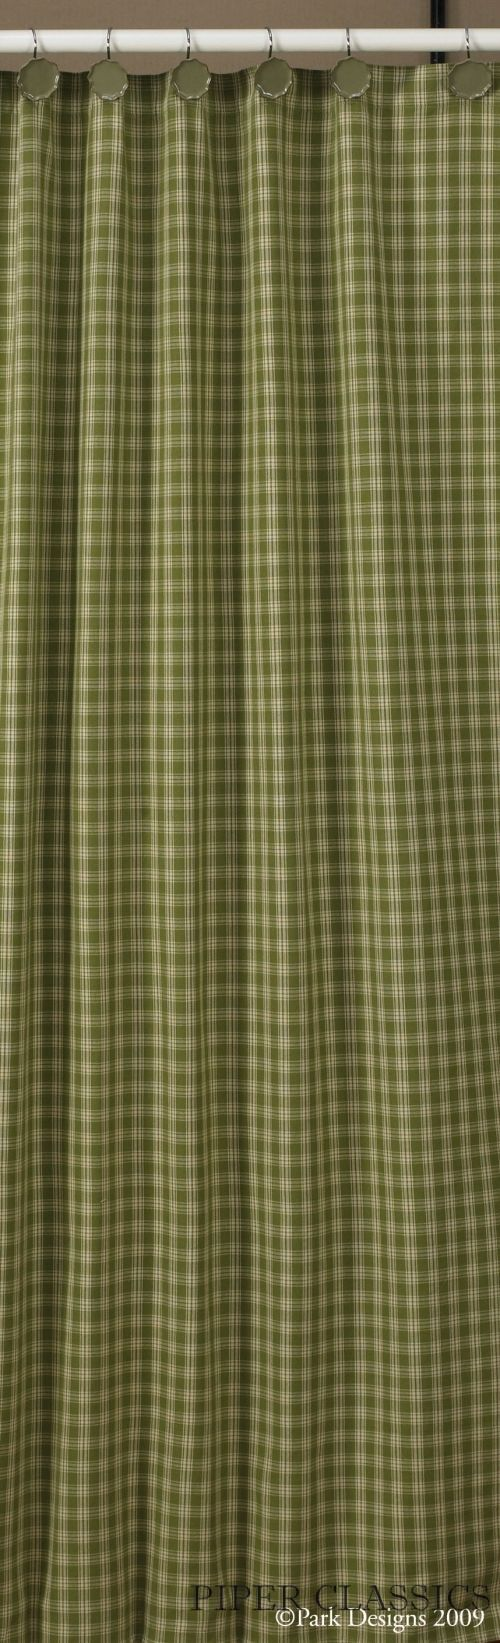 Green shower curtains - Shower Curtains Country Style Country Shower Curtains Sturbridge Green Shower Curtain Piper